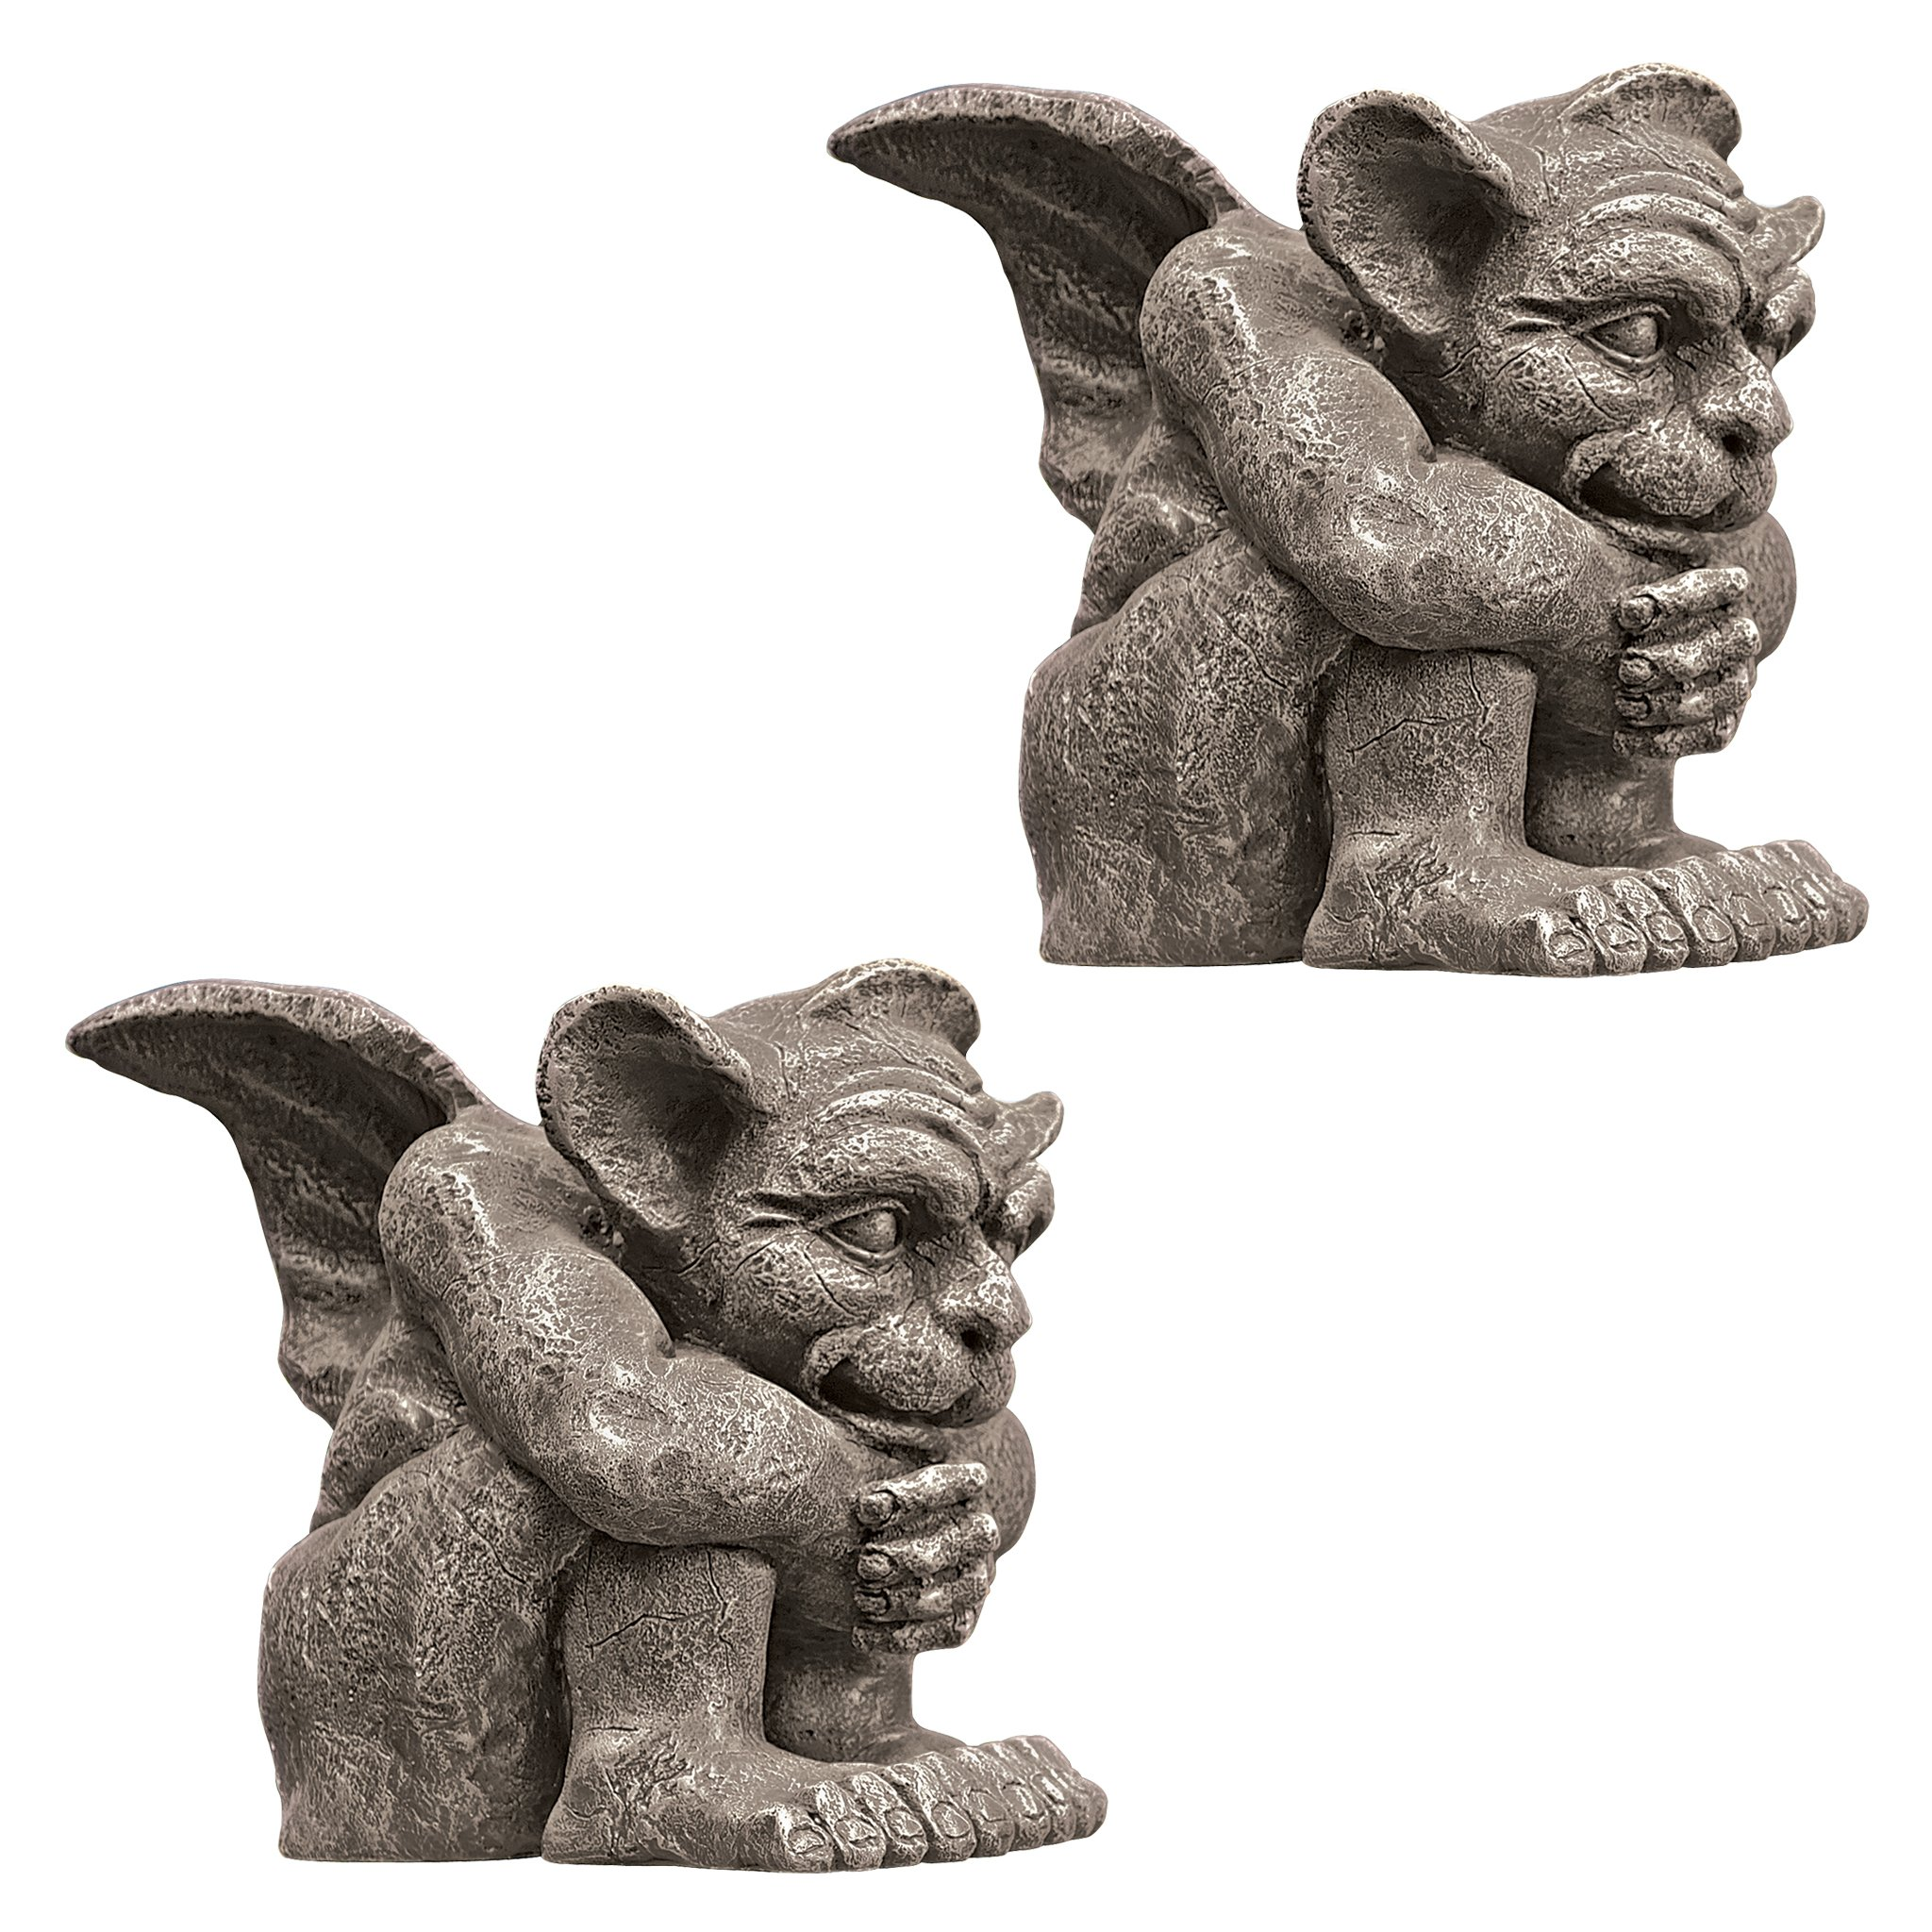 Design Toscano Emmett the Gargoyle Sculpture: Small, Set of Two